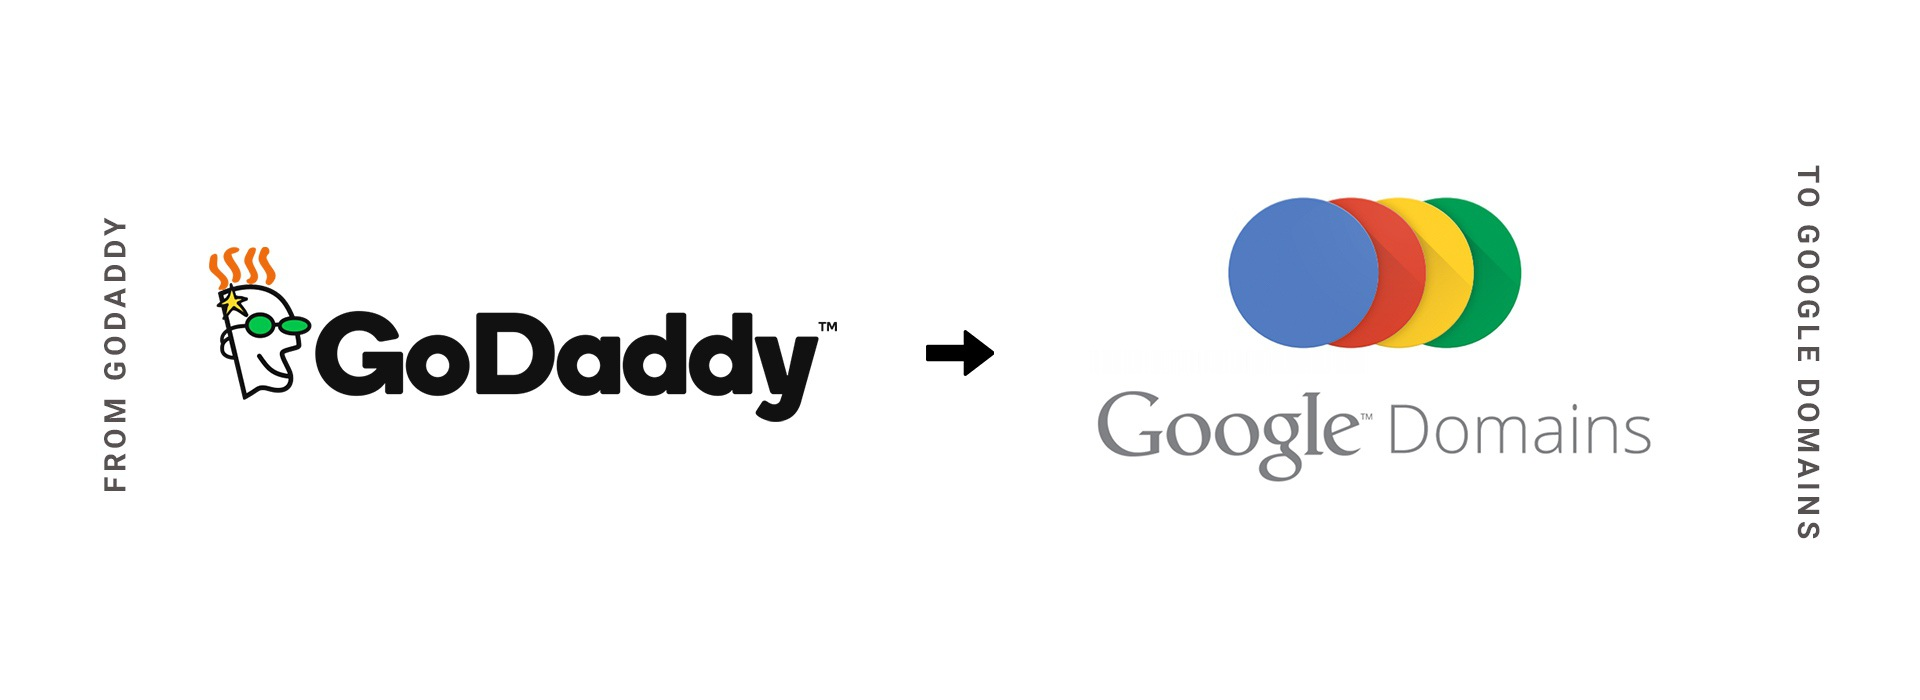 Transferring Domains away from GoDaddy to Google Domains